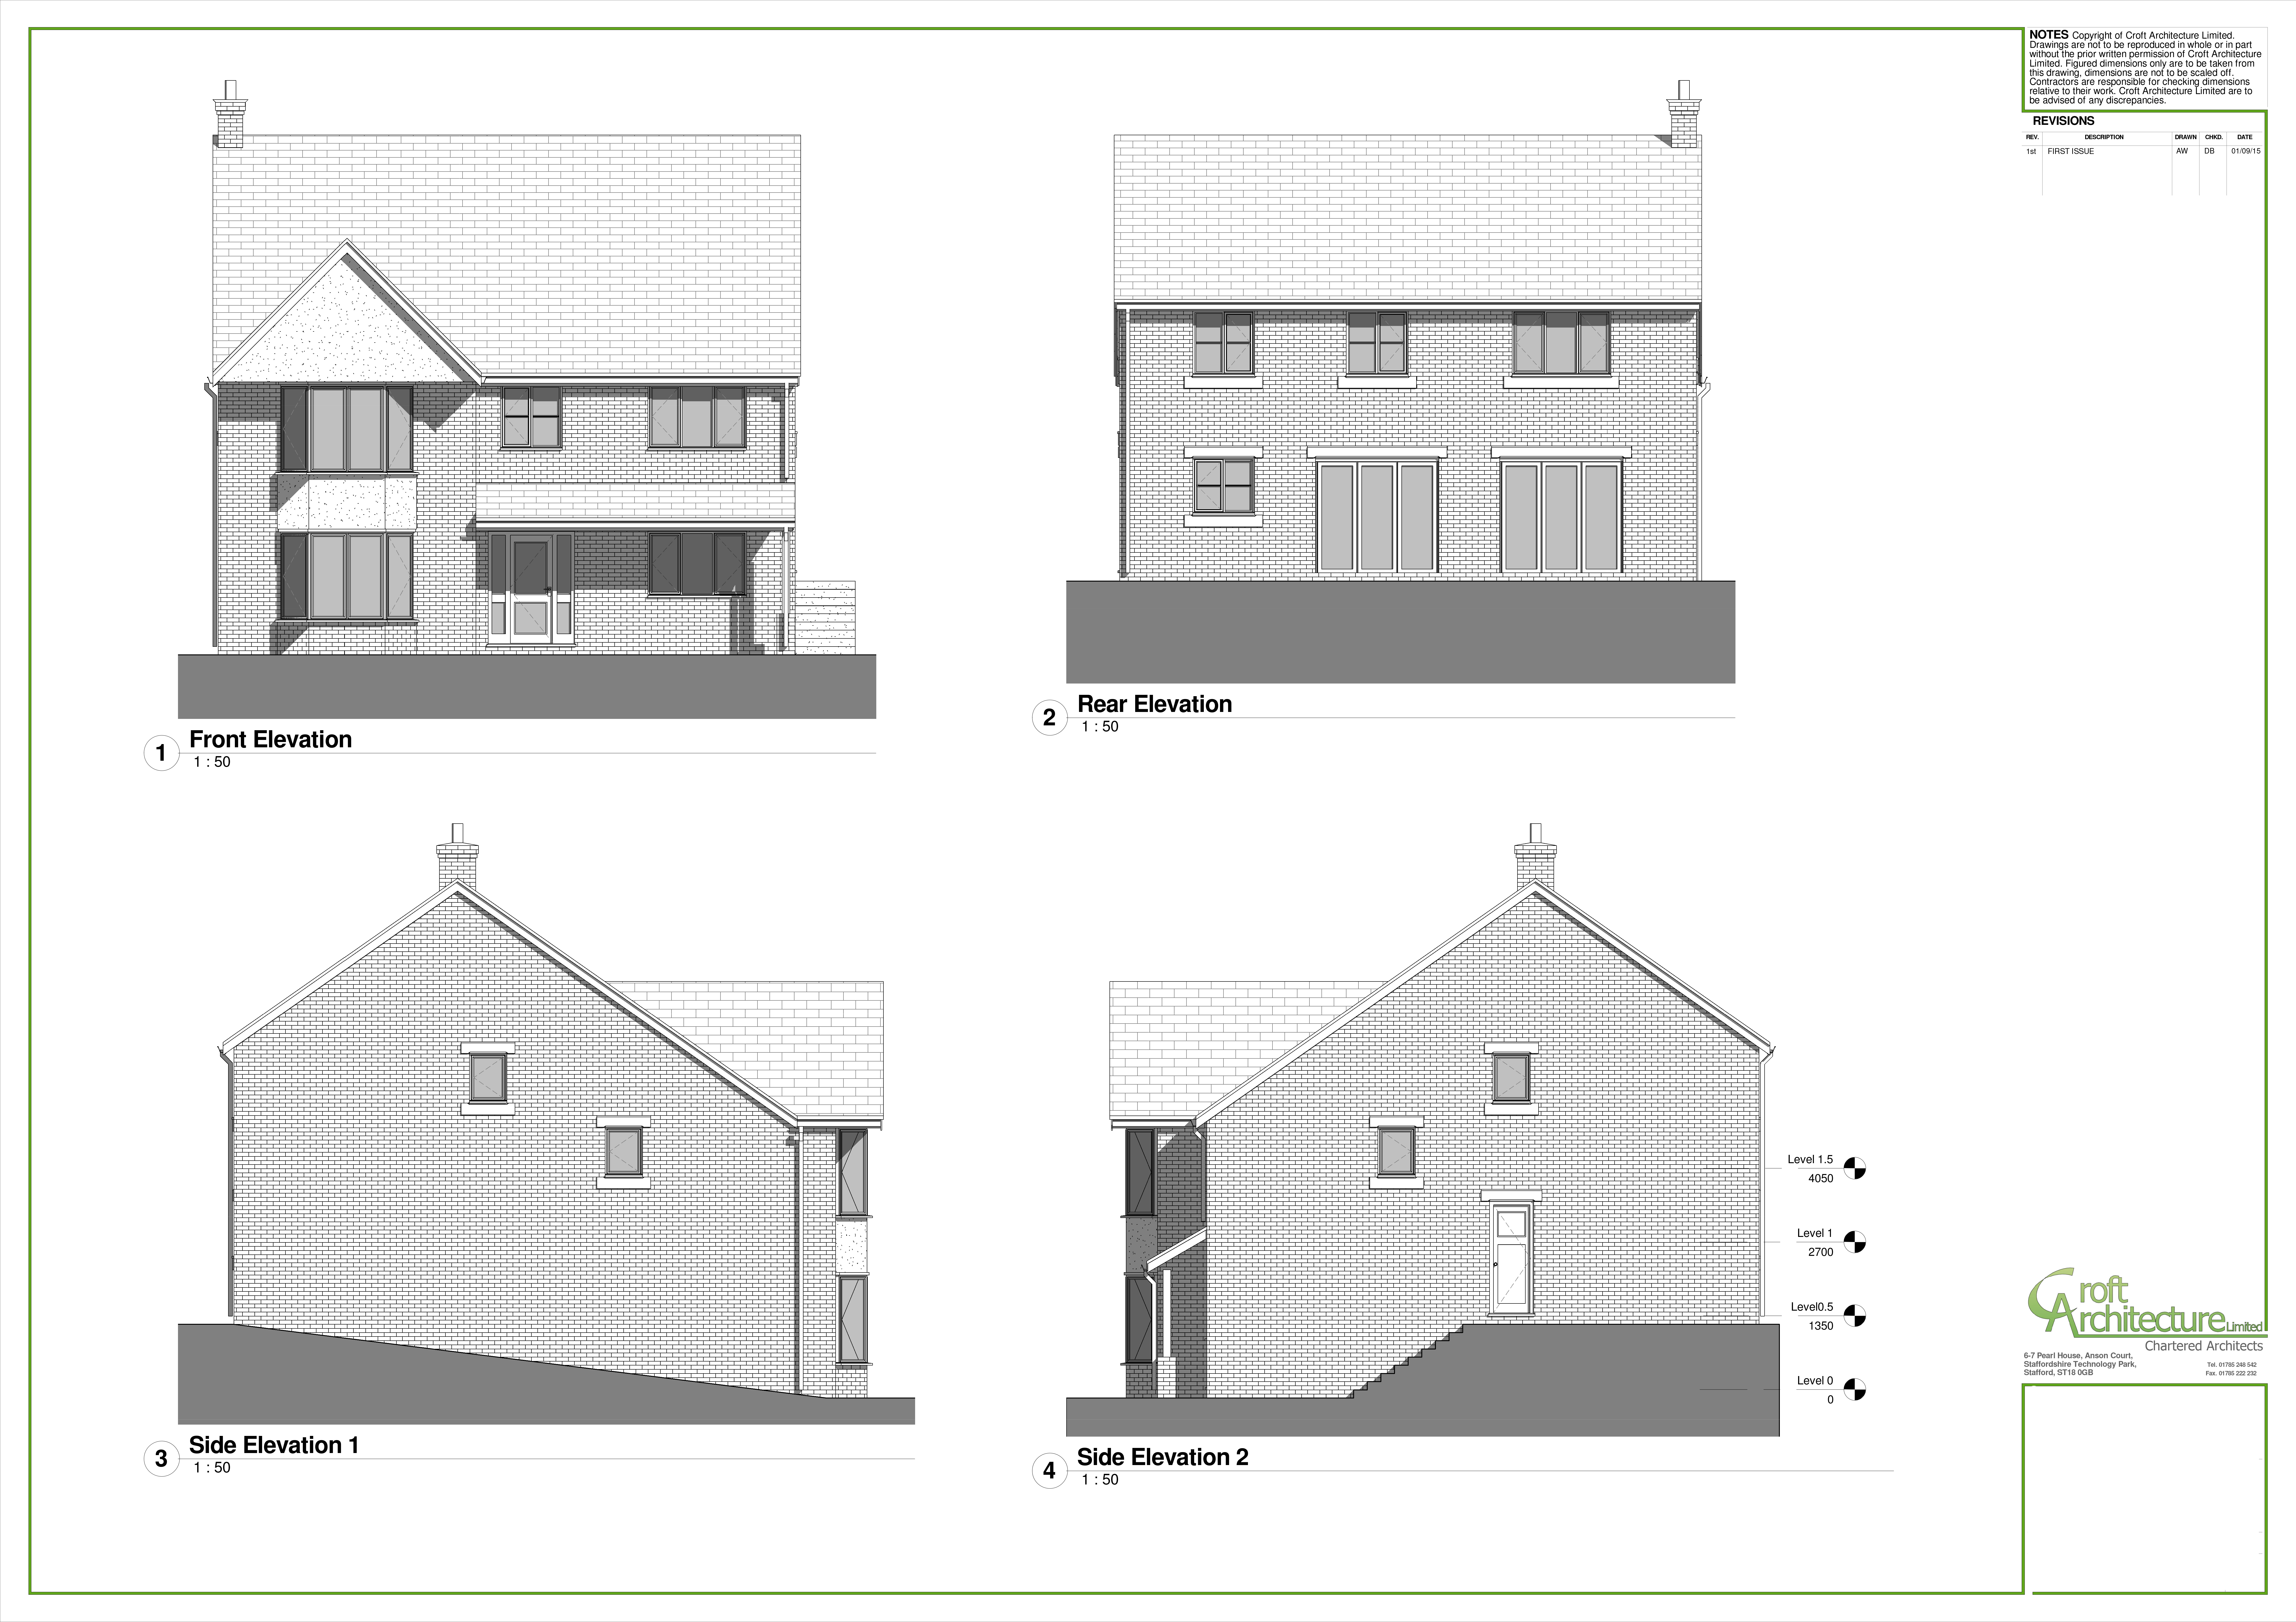 Croft Architecture House Type 2 Proposed Luxury Housing in Staffordshire